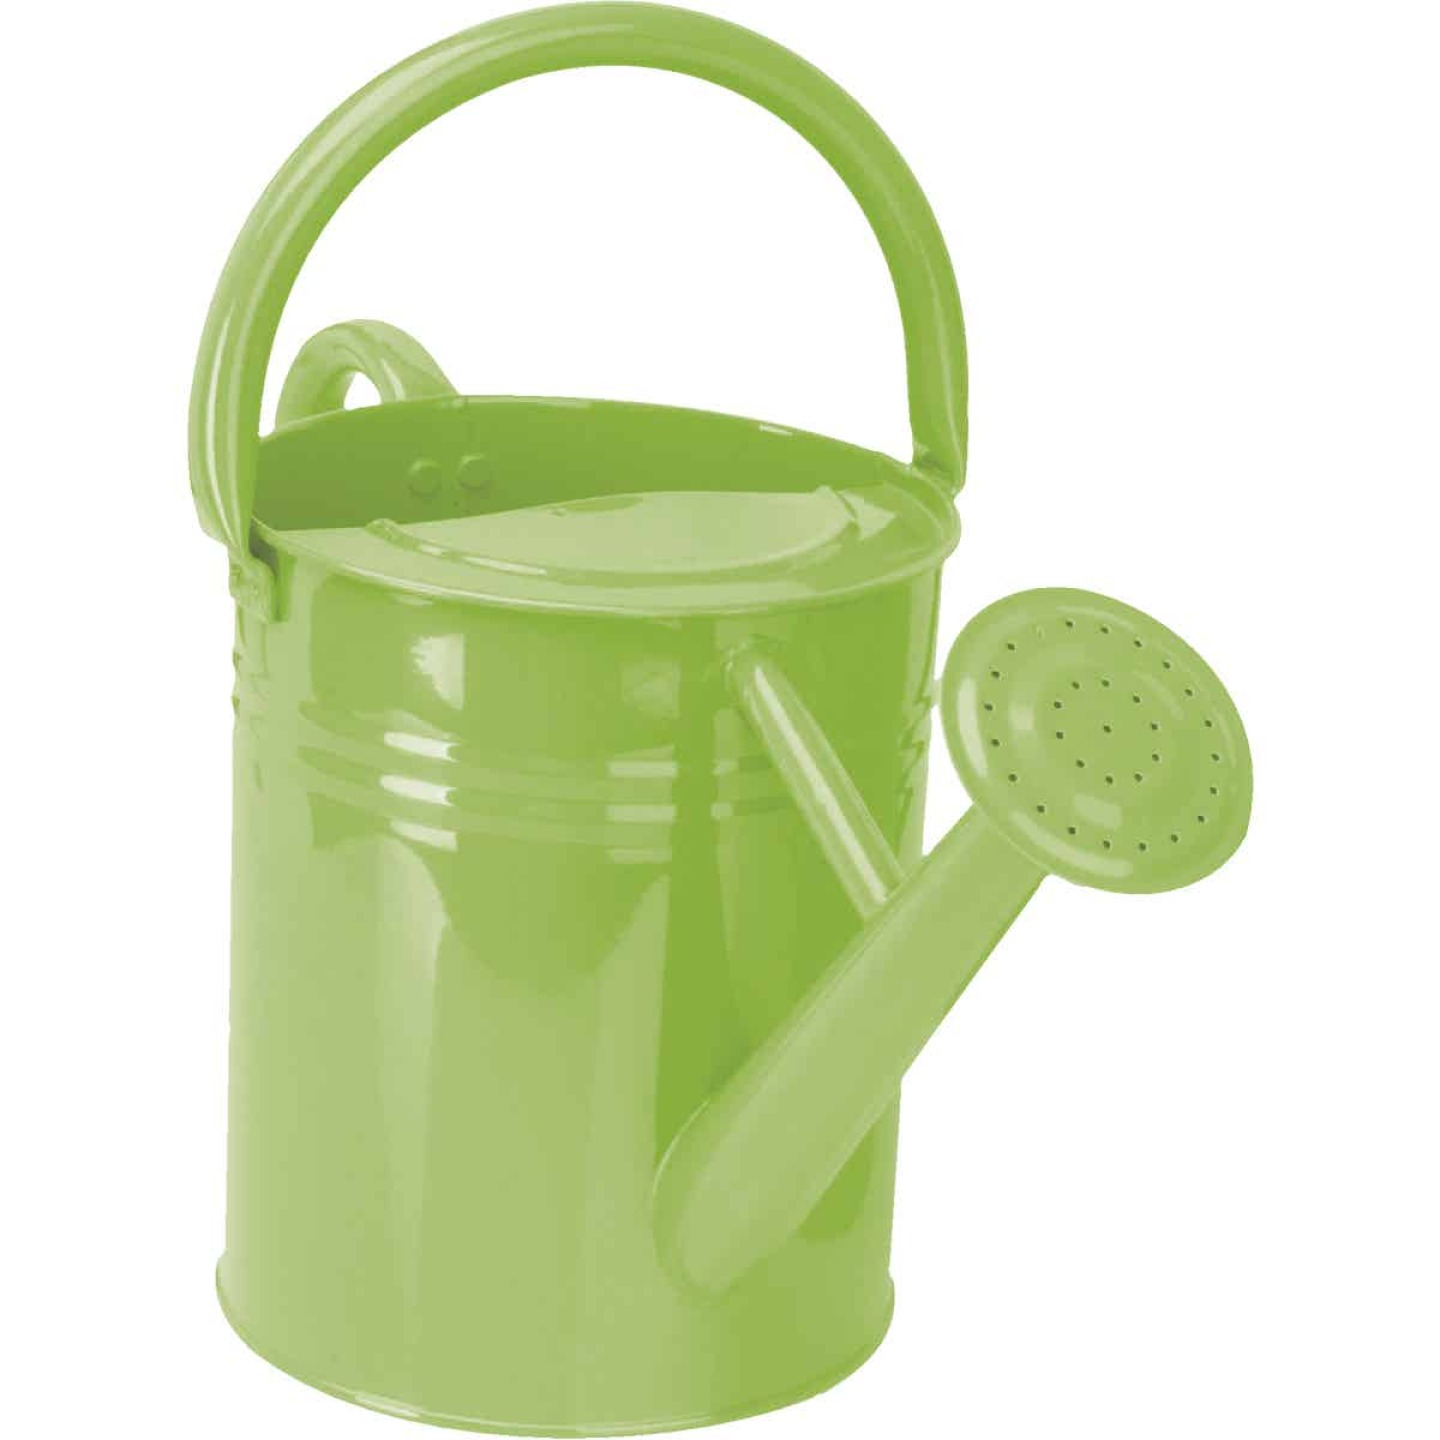 Panacea 1 Gal. Assorted Metal Watering Can Image 3